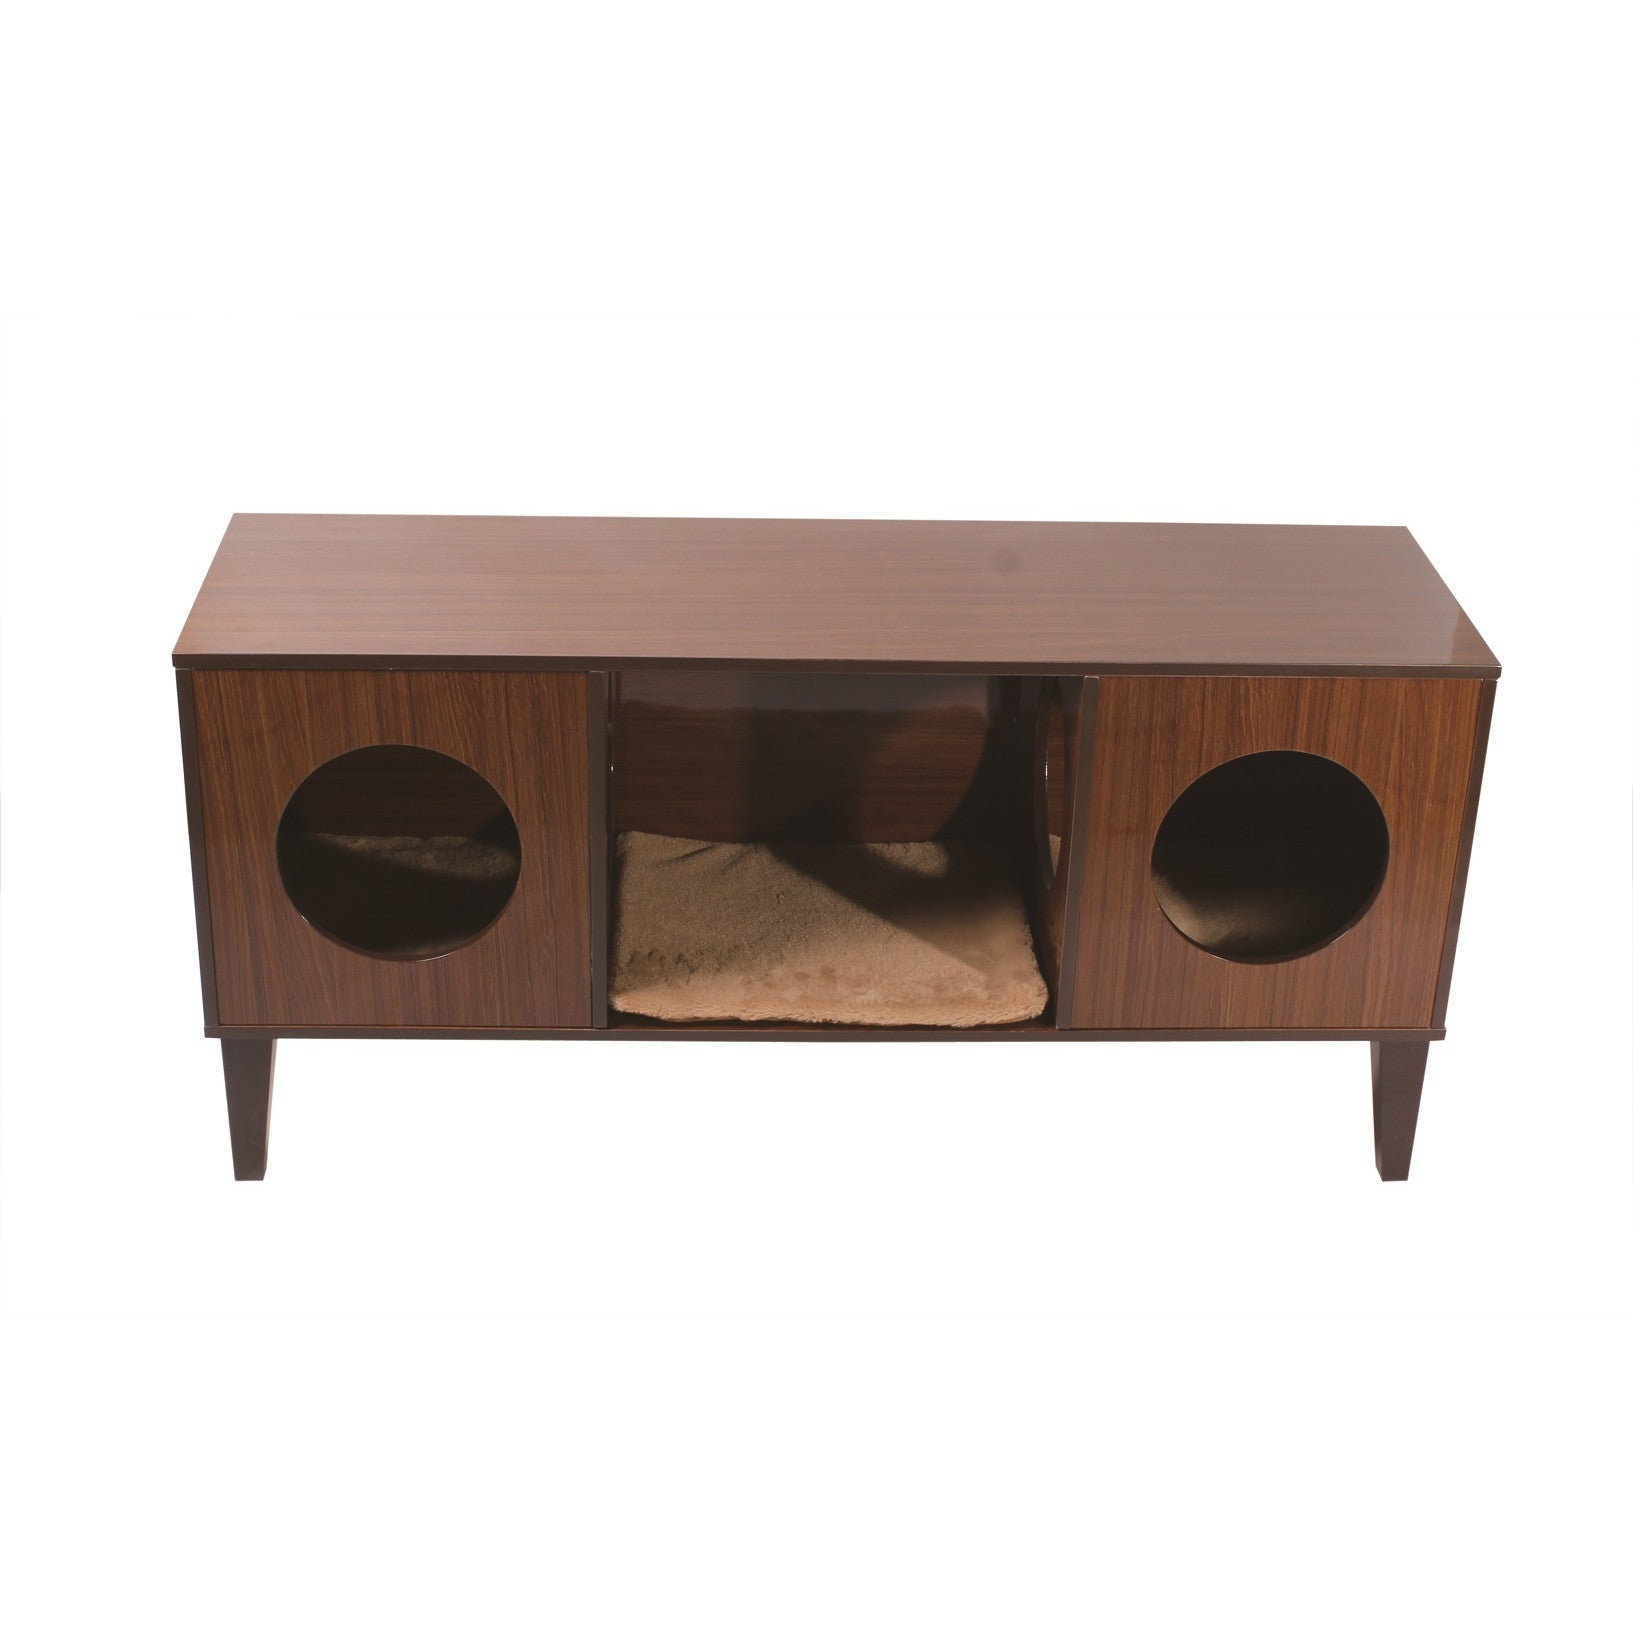 Decor TV Stand with Hidden Cat Bed – Clever and Modern